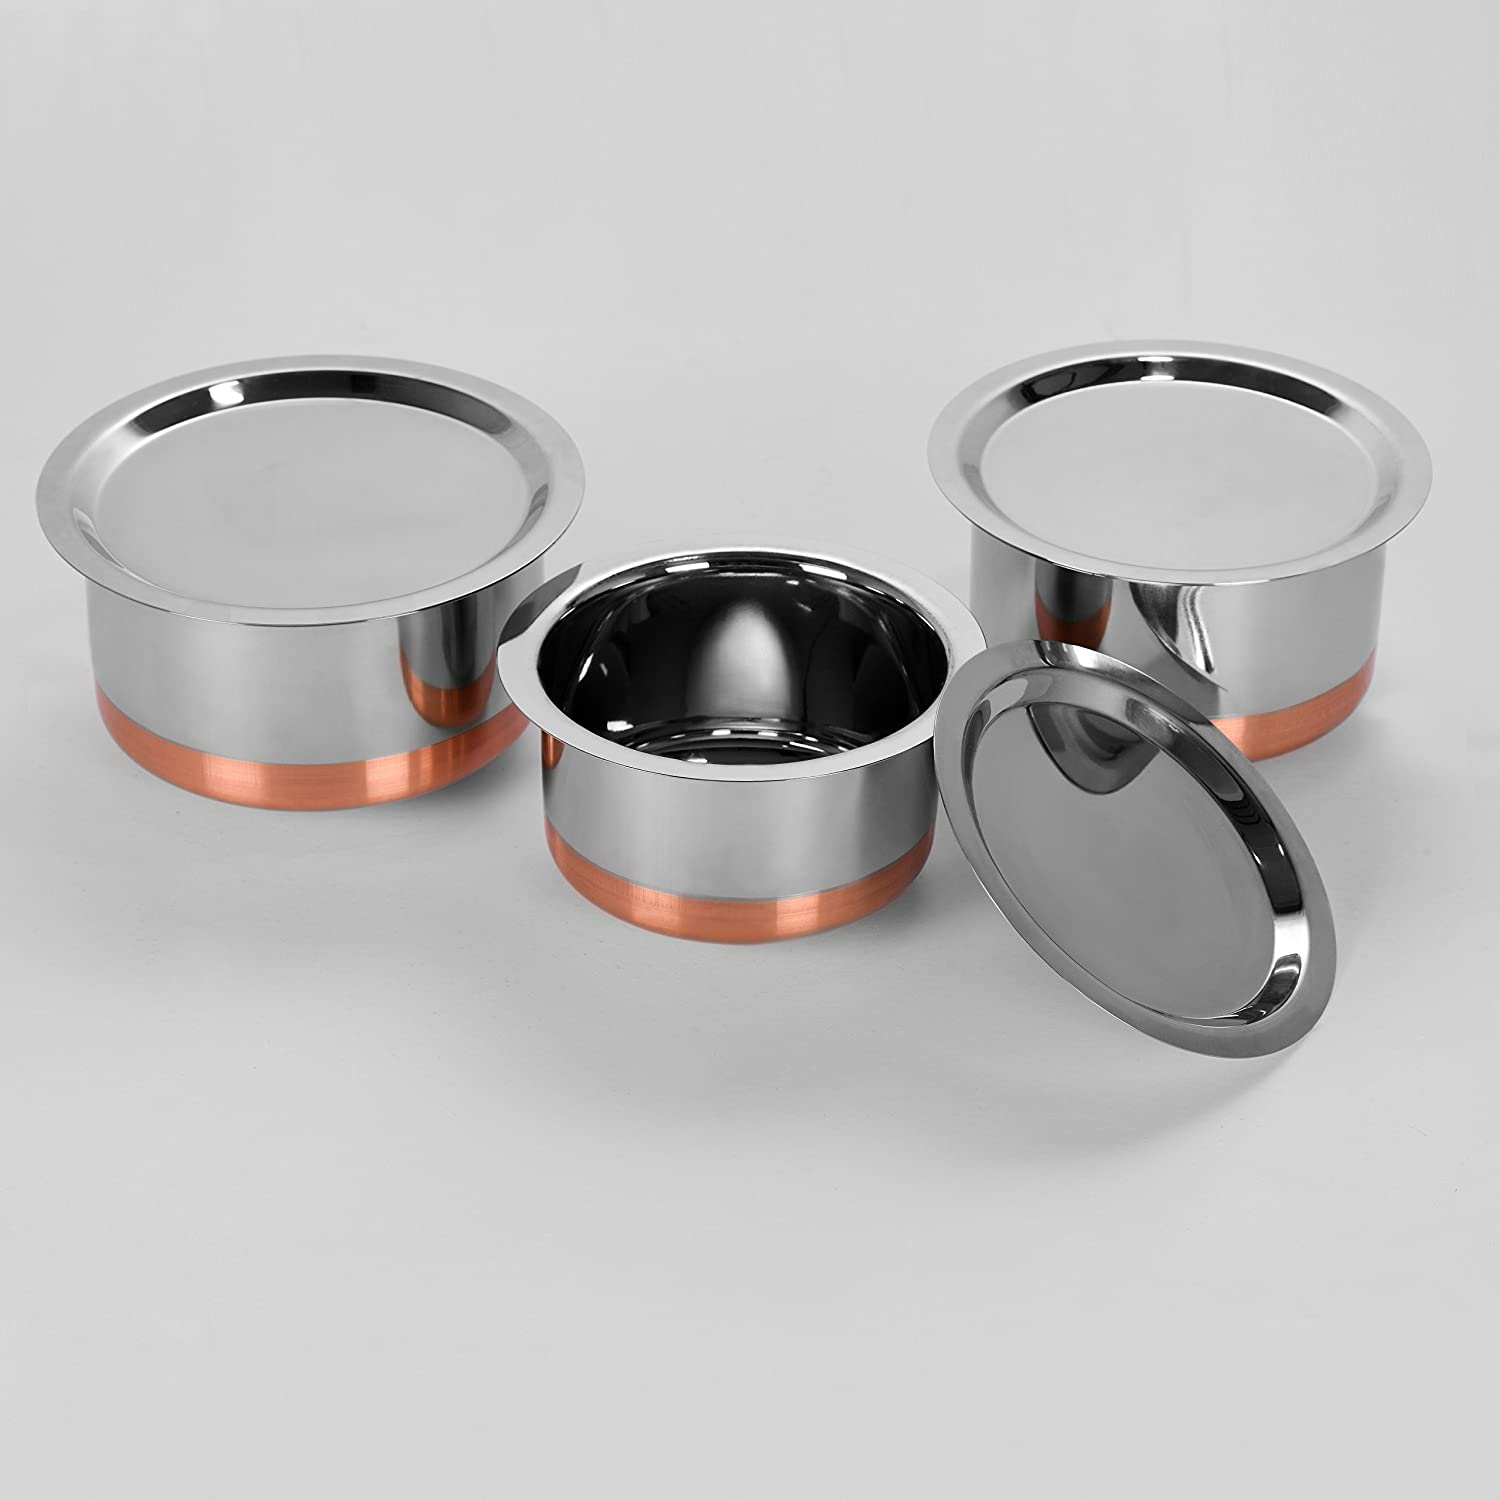 Sumeet Stainless Steel Cheap mail order shopping Copper Bottom Cookware Deluxe Set Tope Container